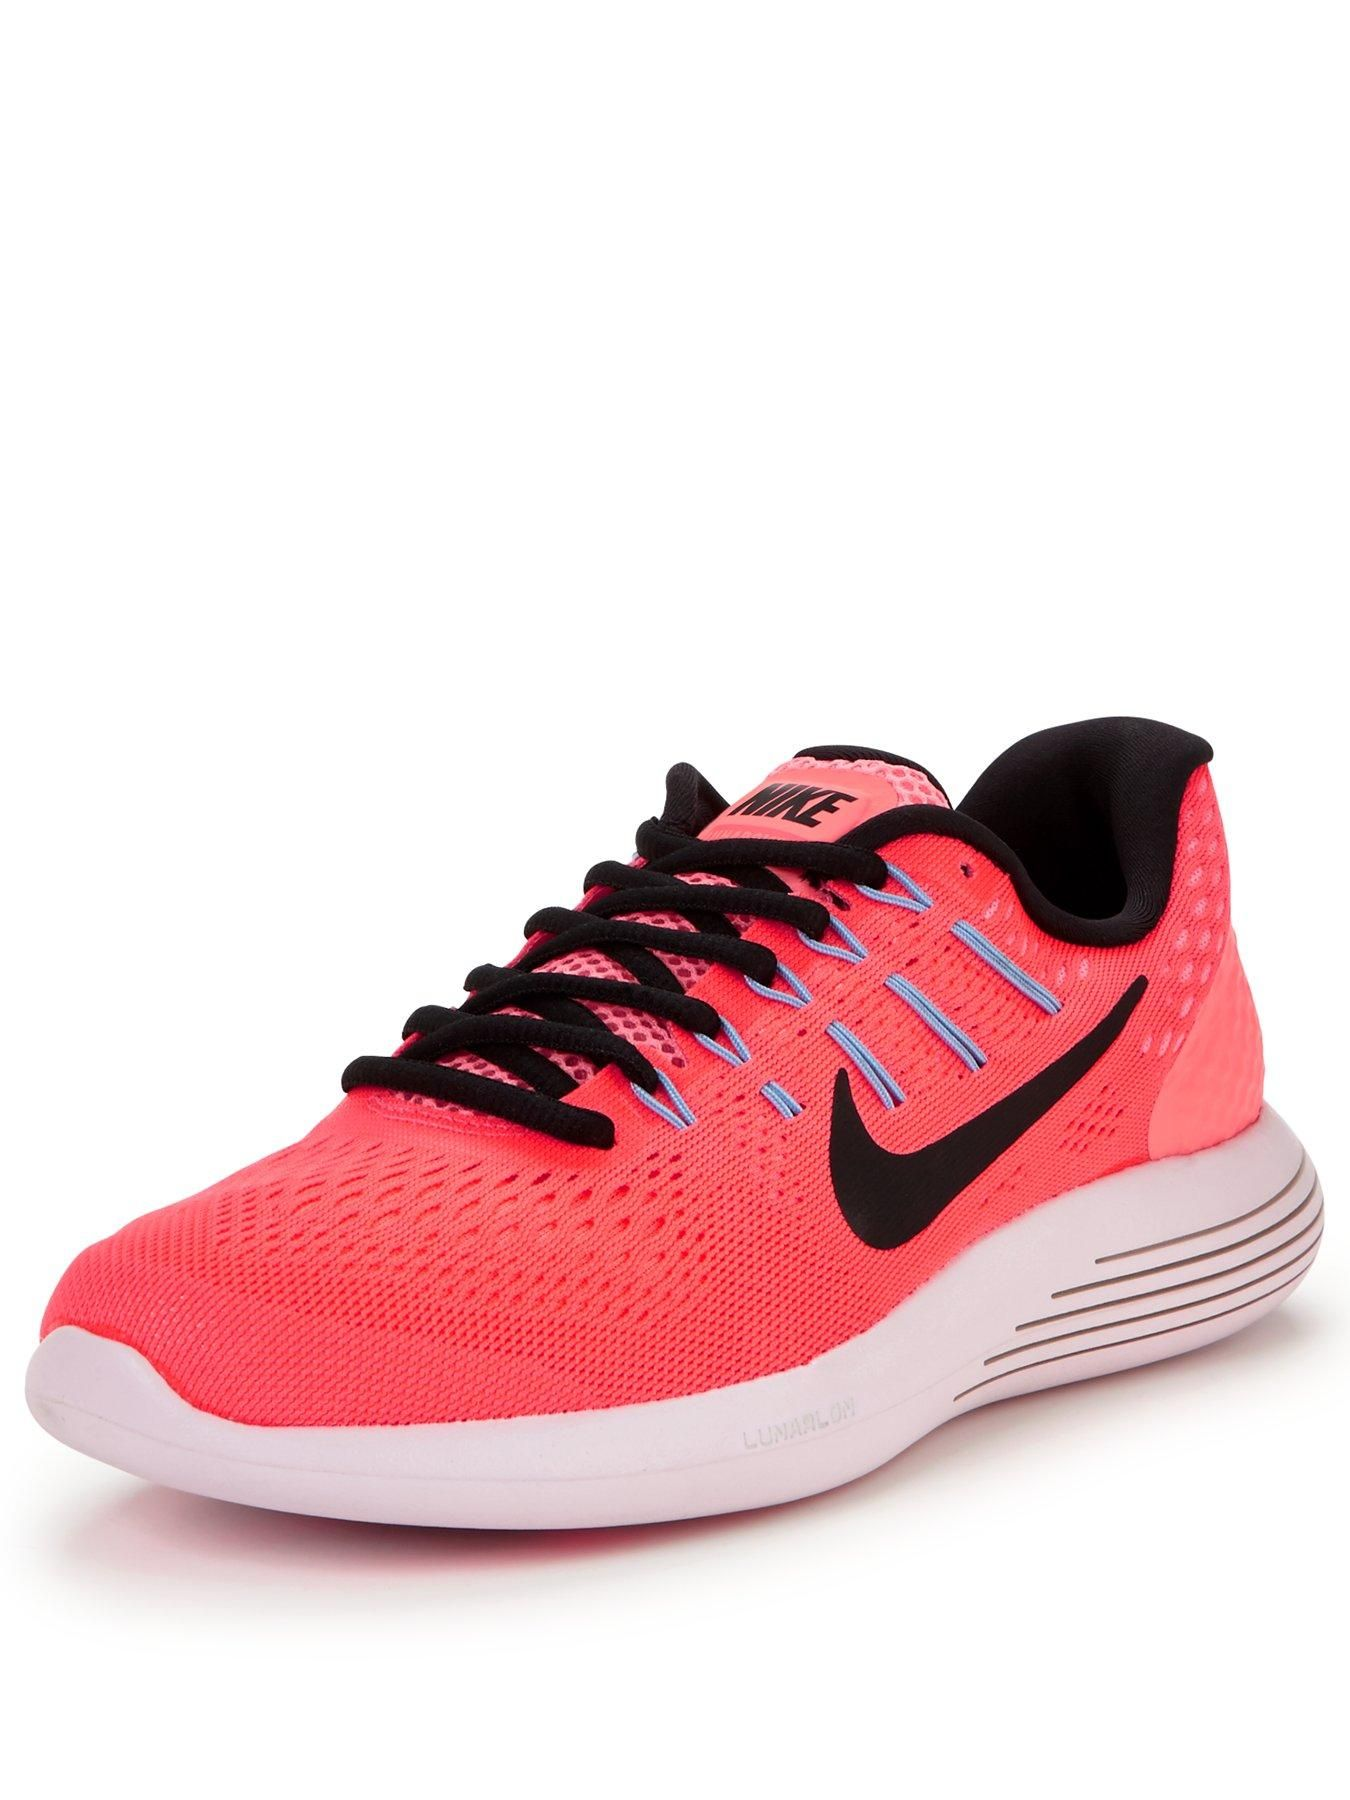 premium selection c4189 c2de7 Nike LunarGlide 8 - Pink Black When it comes to running, cushioning is key